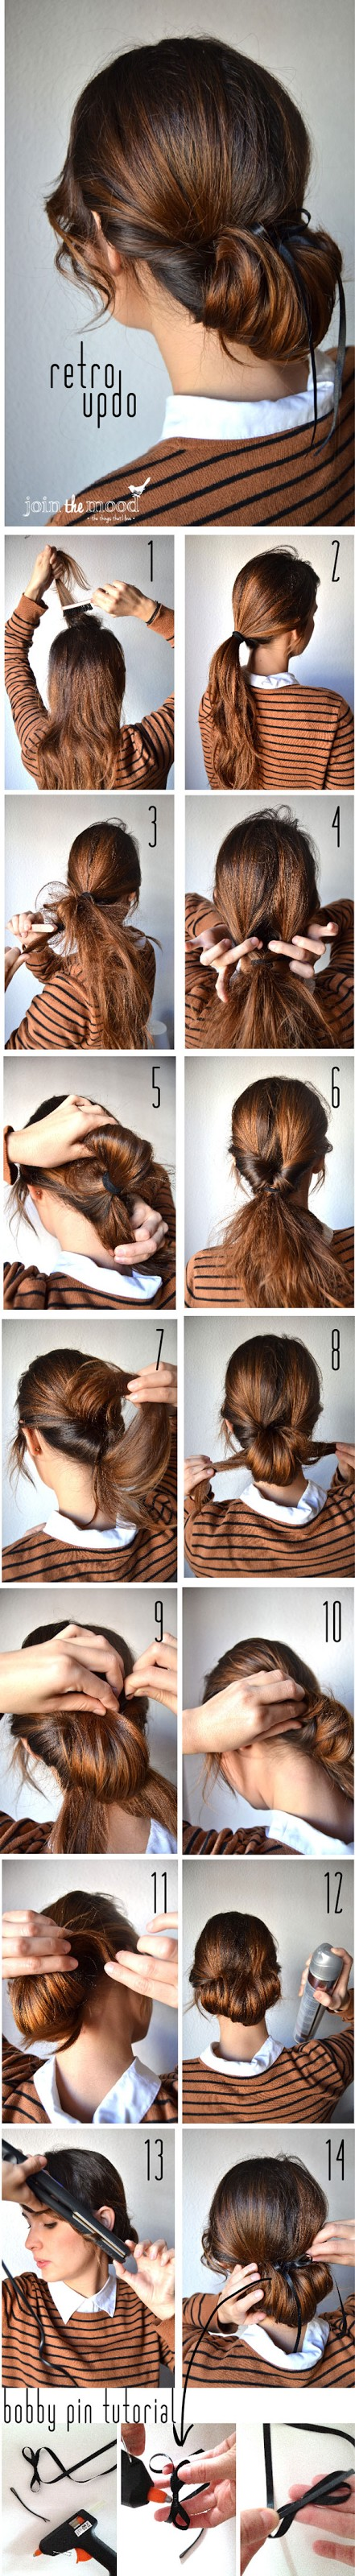 Make A Retro UpDo hairstyles tutorial My Style Pinterest